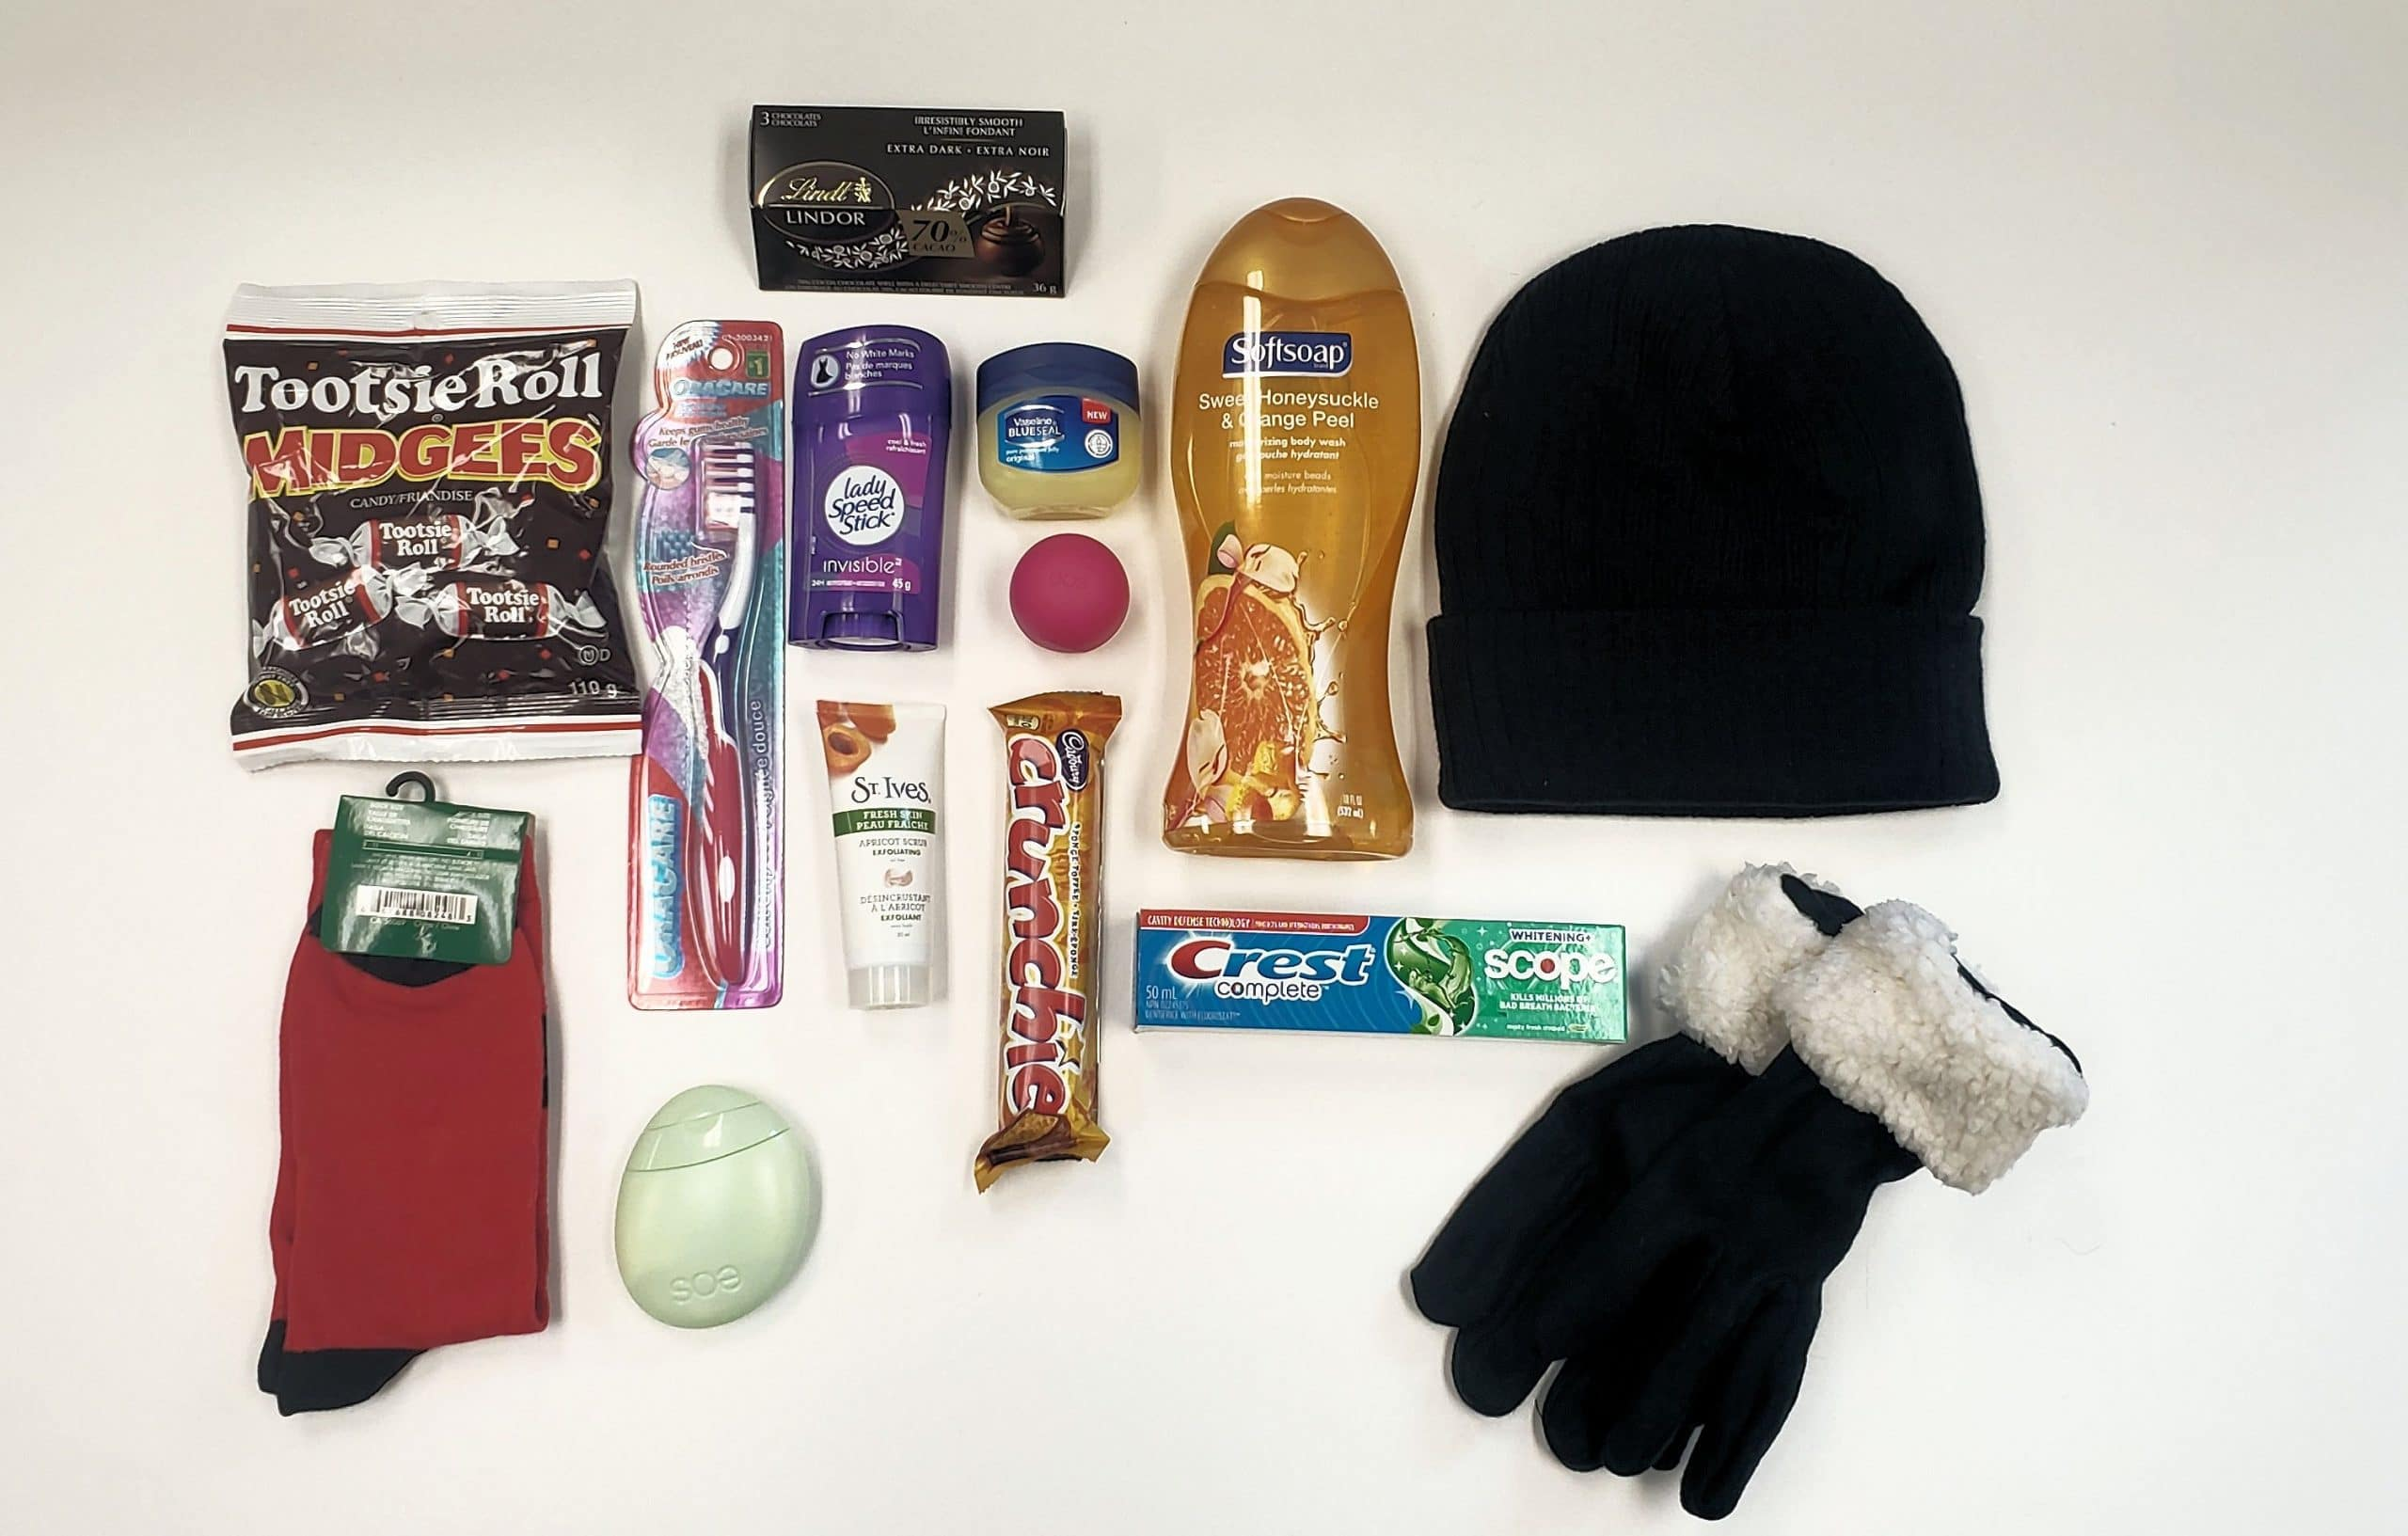 Toiletries, snacks and warm hat and gloves for the homeless care package